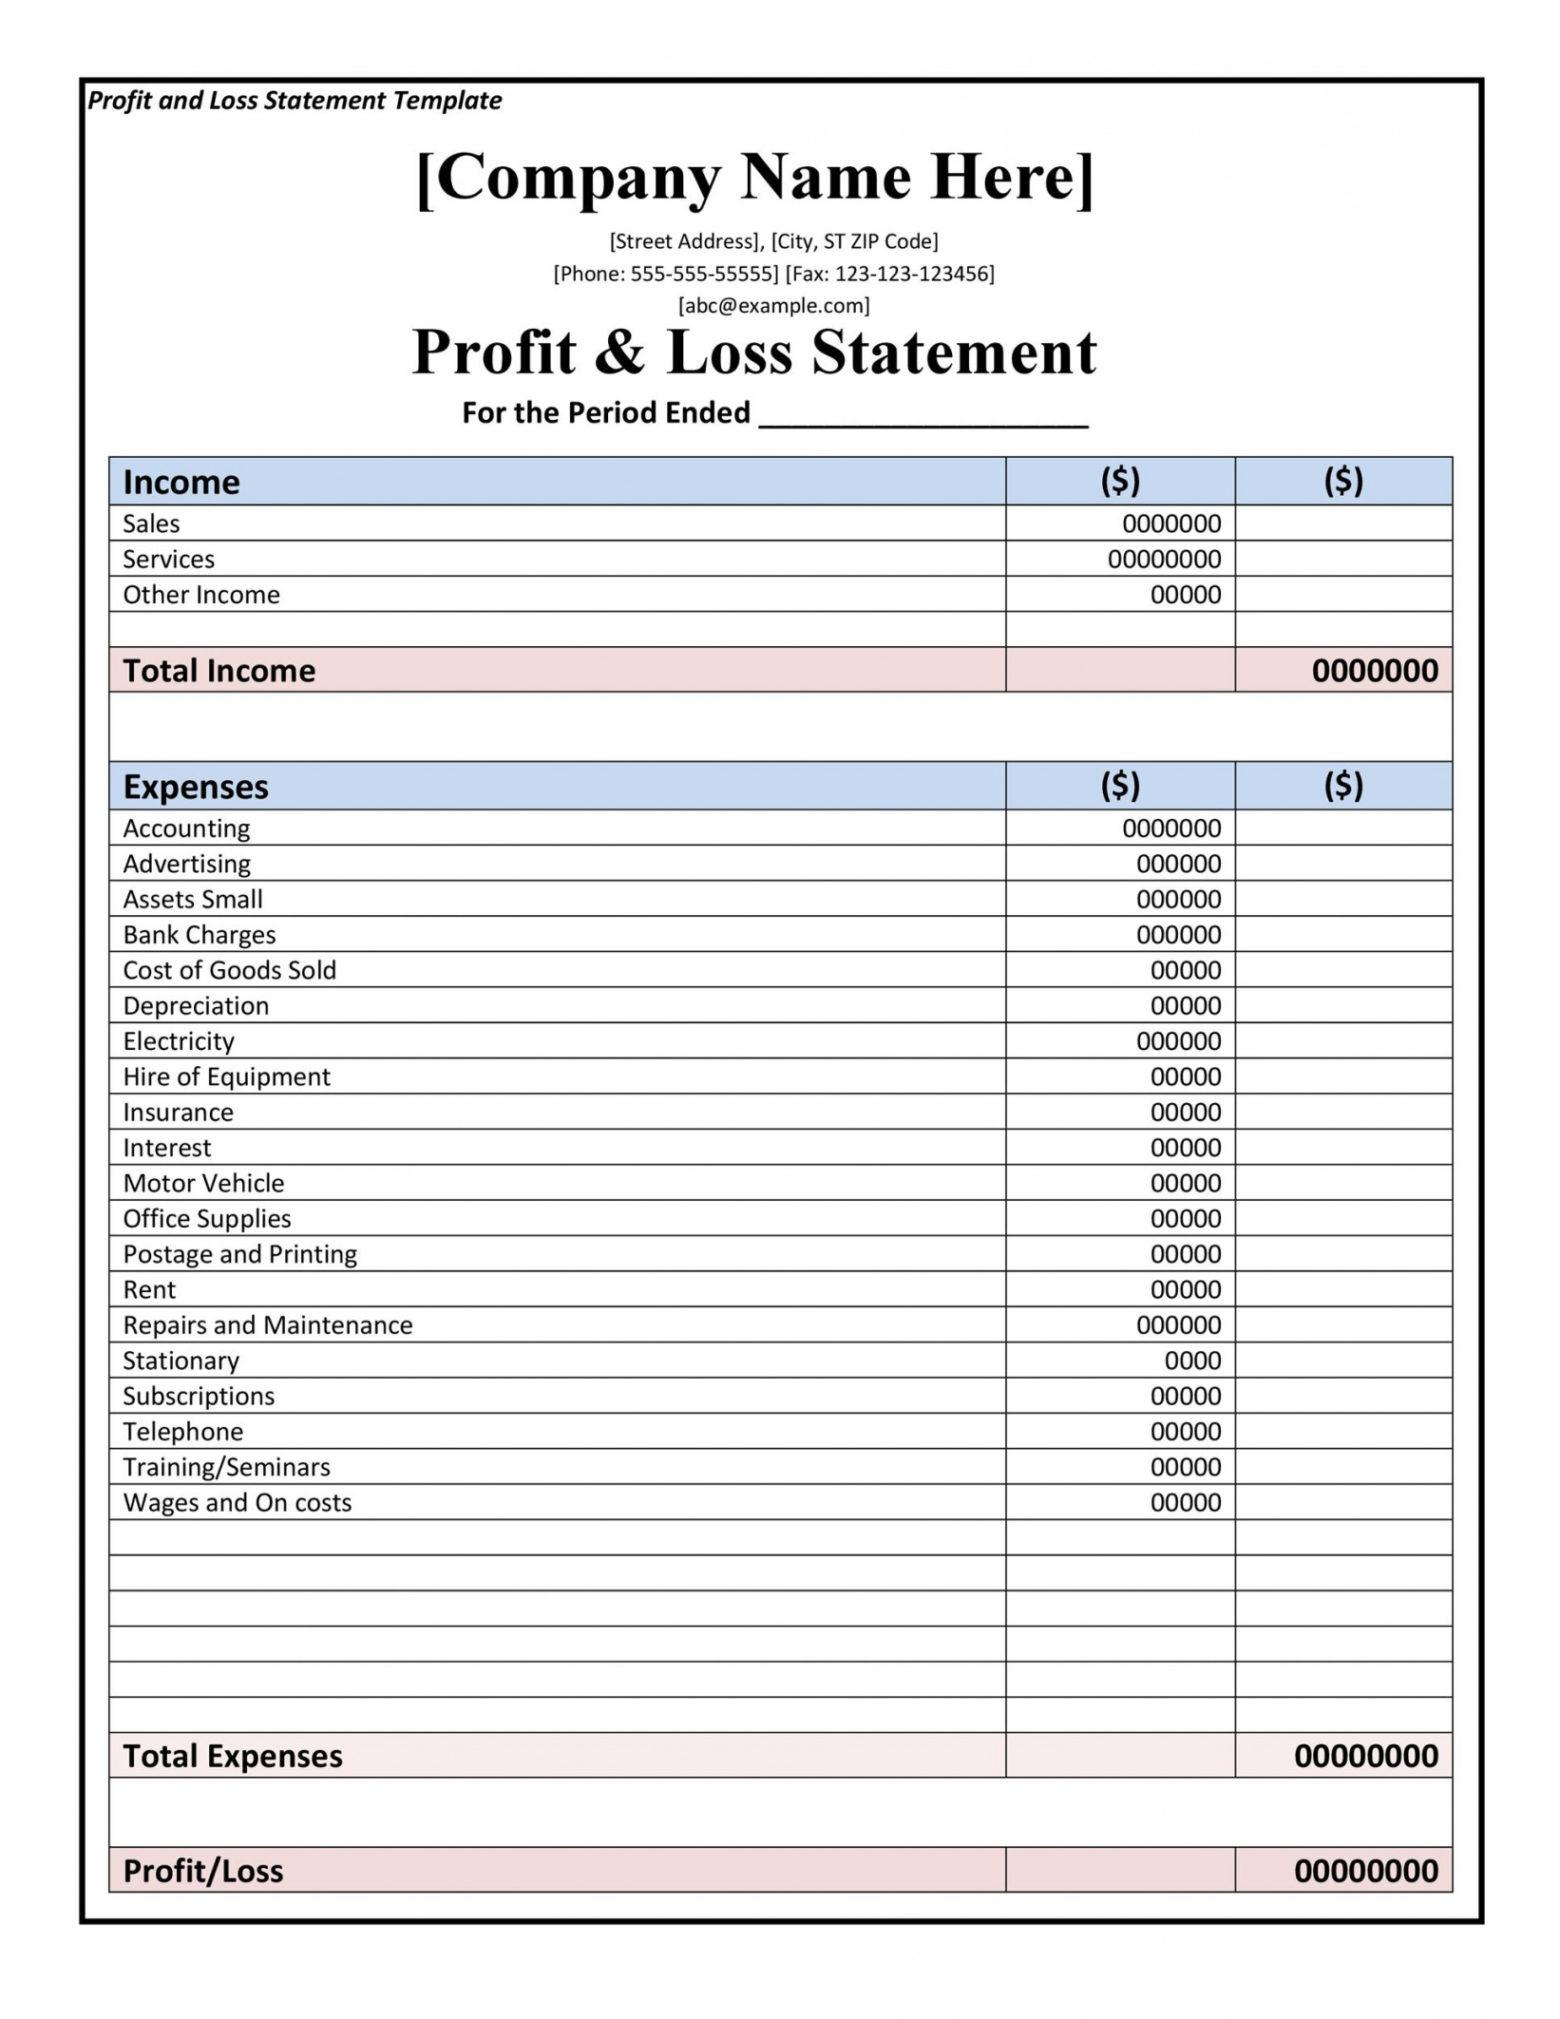 Profit And Loss Statement For Small Business Template